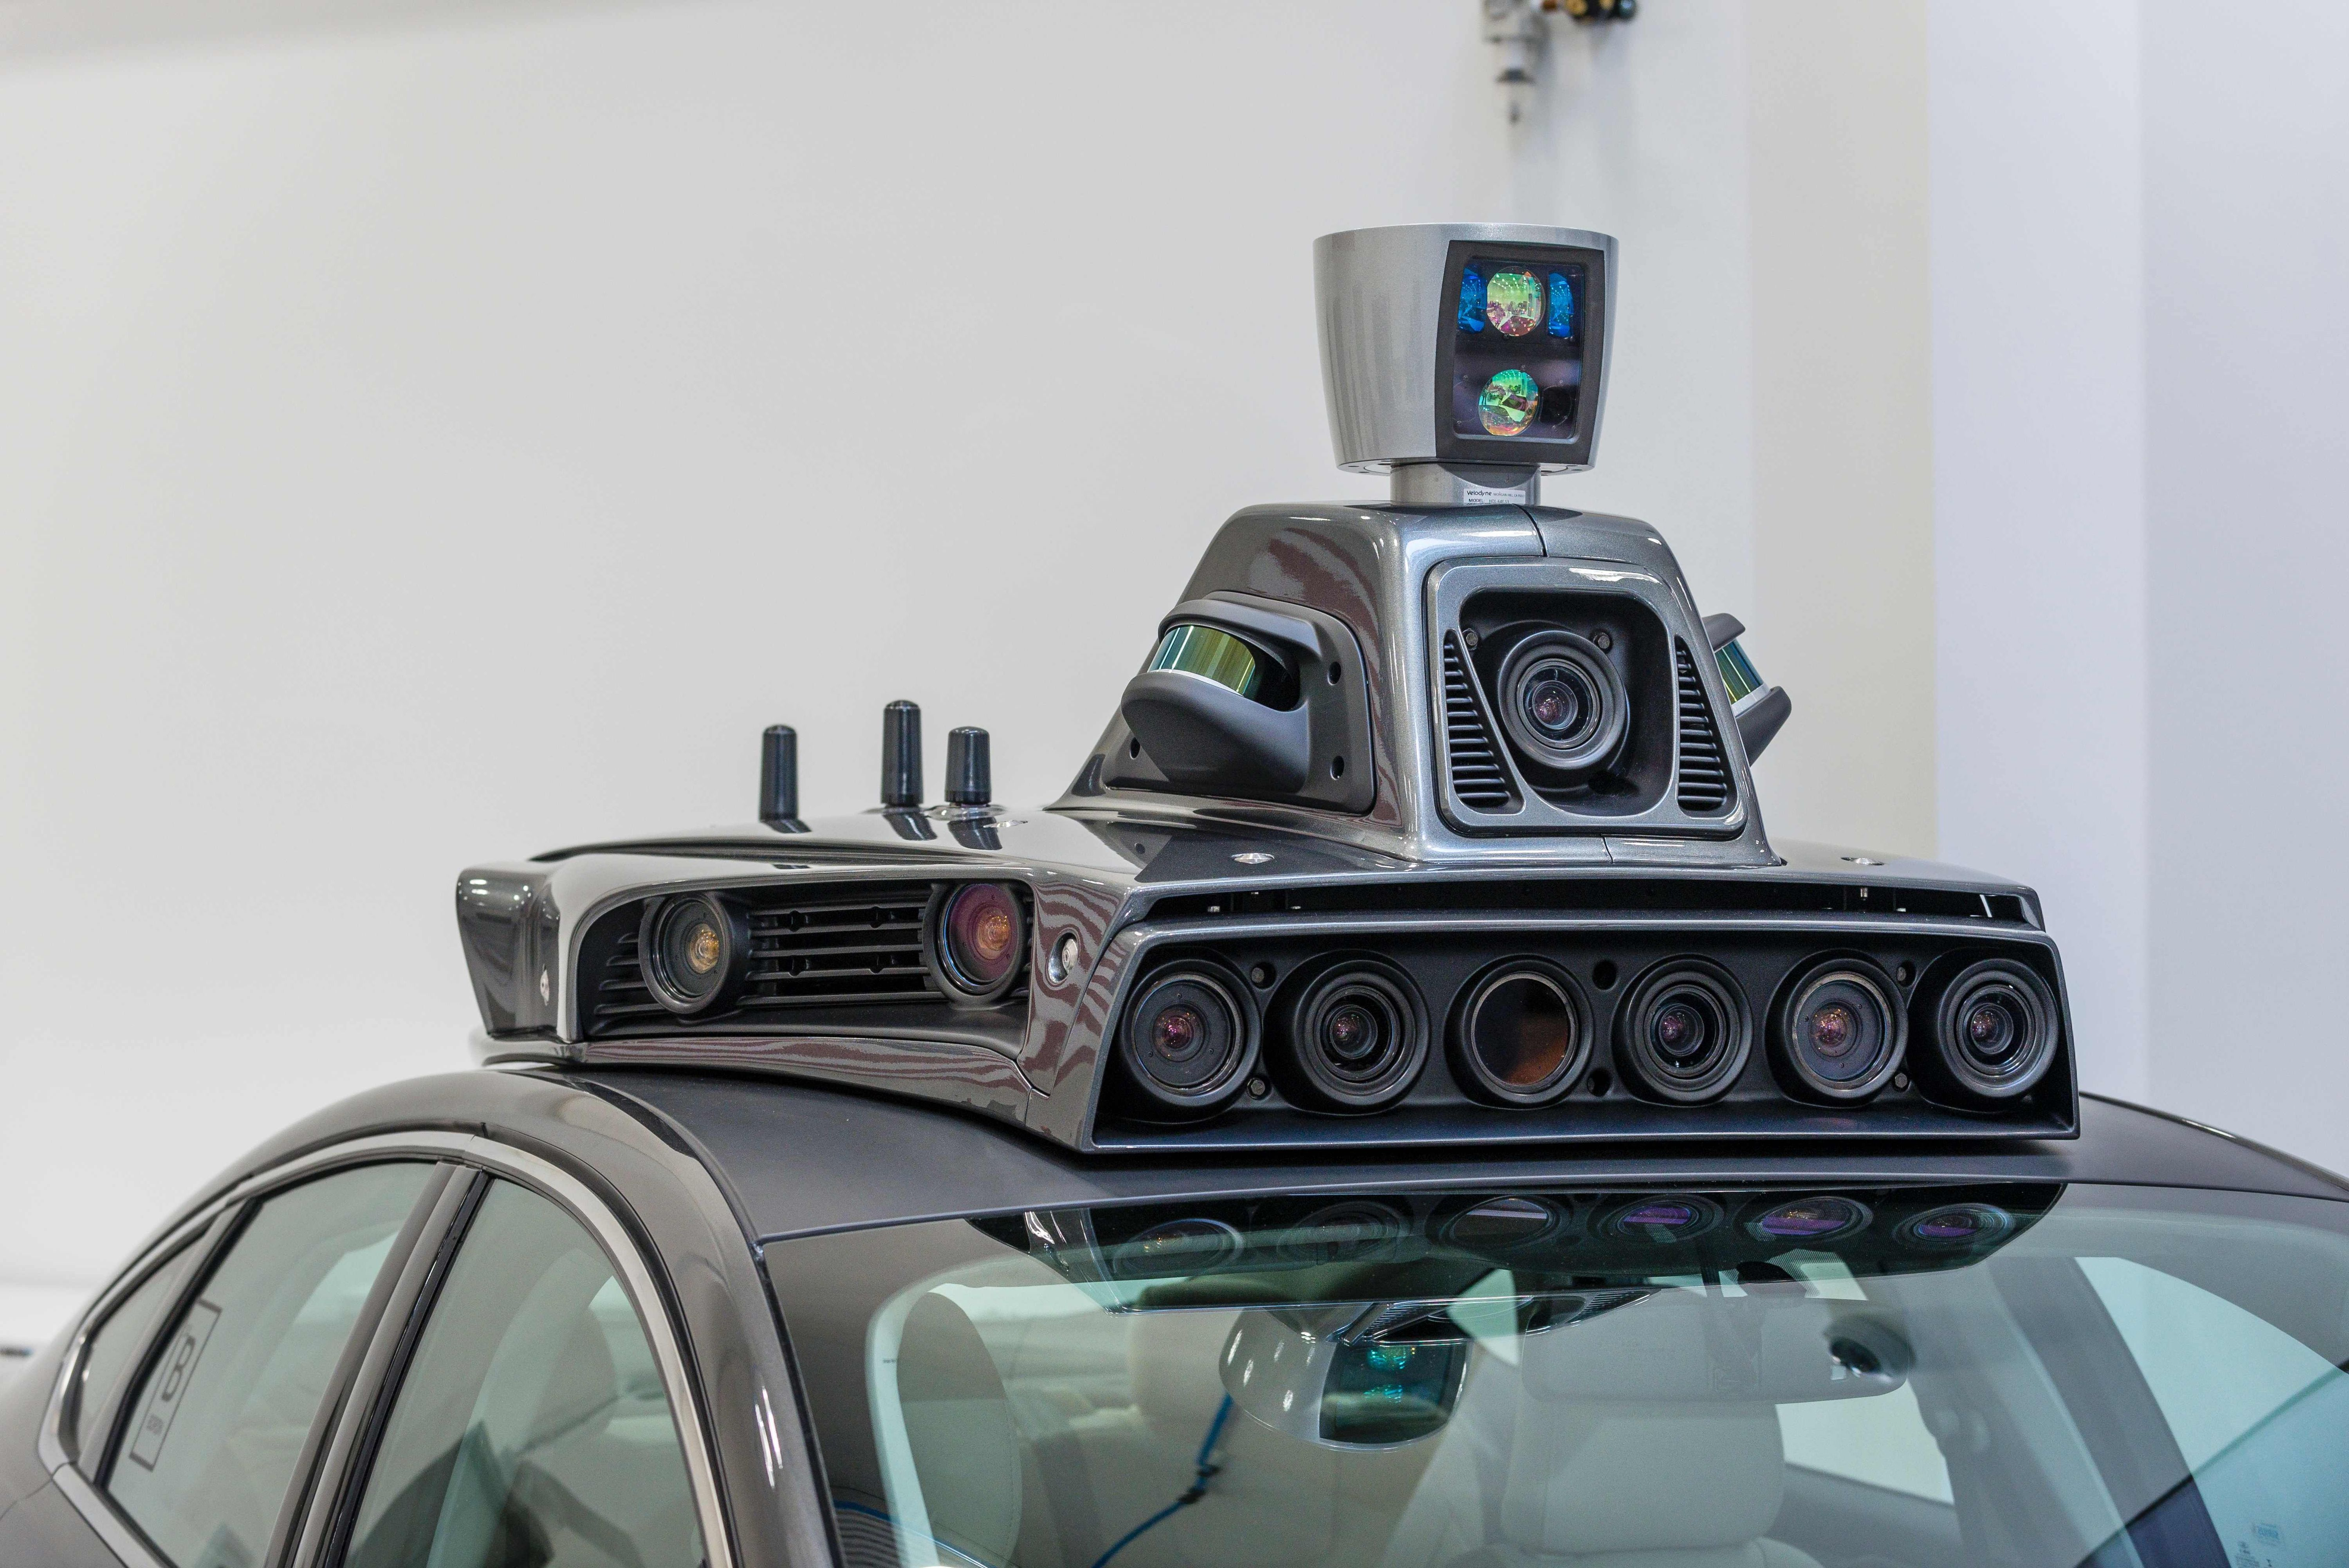 FILES) This file photo taken on September 13, 2016 shows the cameras on a pilot model of an Uber self-driving car at the Uber Advanced Technologies Center in Pittsburgh, Pennsylvania. Uber has grounded its fleet of self-driving cars pending an investigation into the crash of an Uber autonomous vehicle in Arizona, a spokesperson for the car-hailing service said on March26, 2017. No one was seriously injured in the accident which occurred on March 24 in Tempe, Arizona, while the vehicle -- a Volvo SUV -- was in self-driving mode, the company said. / AFP PHOTO / Angelo Merendino